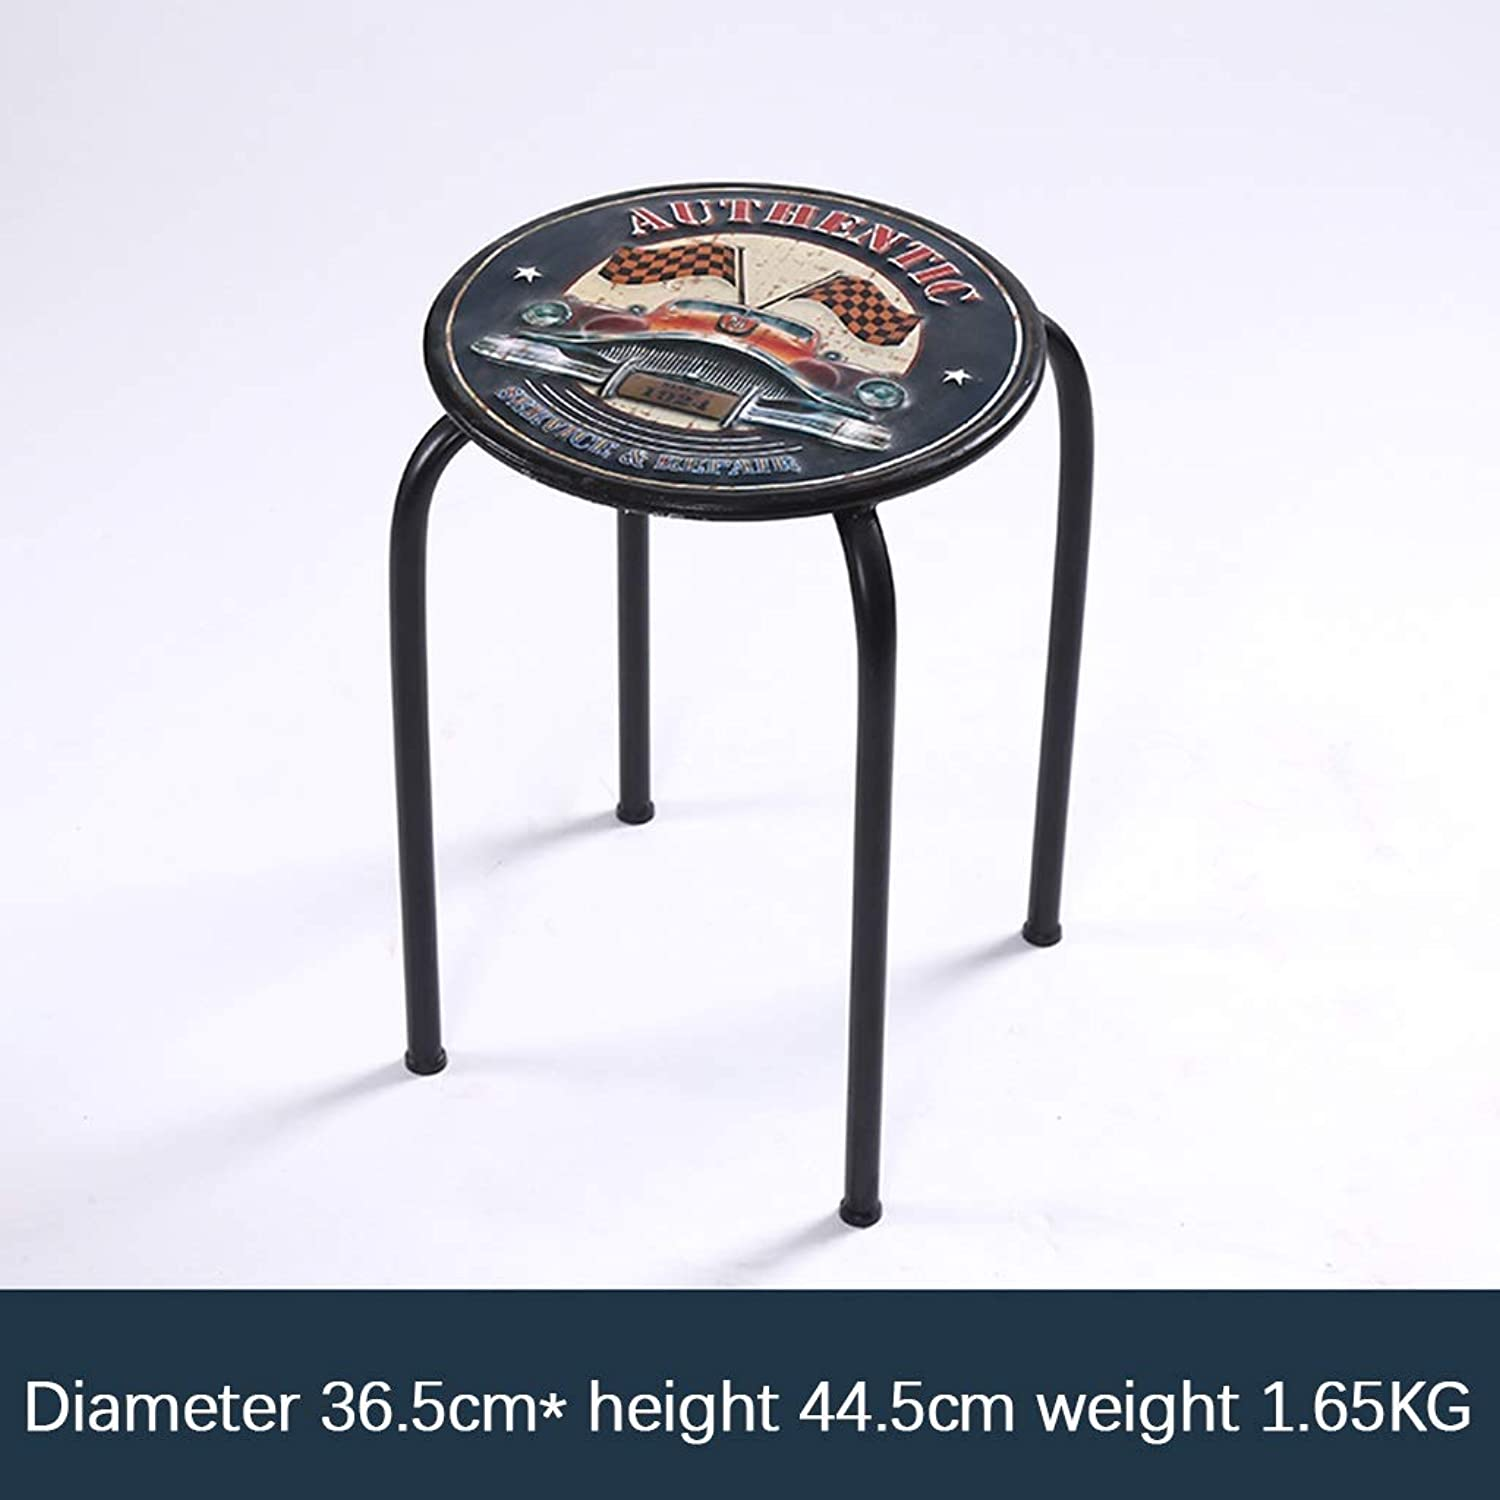 Iron Art Retro Round Bar Stool Simple Personality Dining Table Counter Chairs Metal Seat Cafe Household 0522A (color   A)